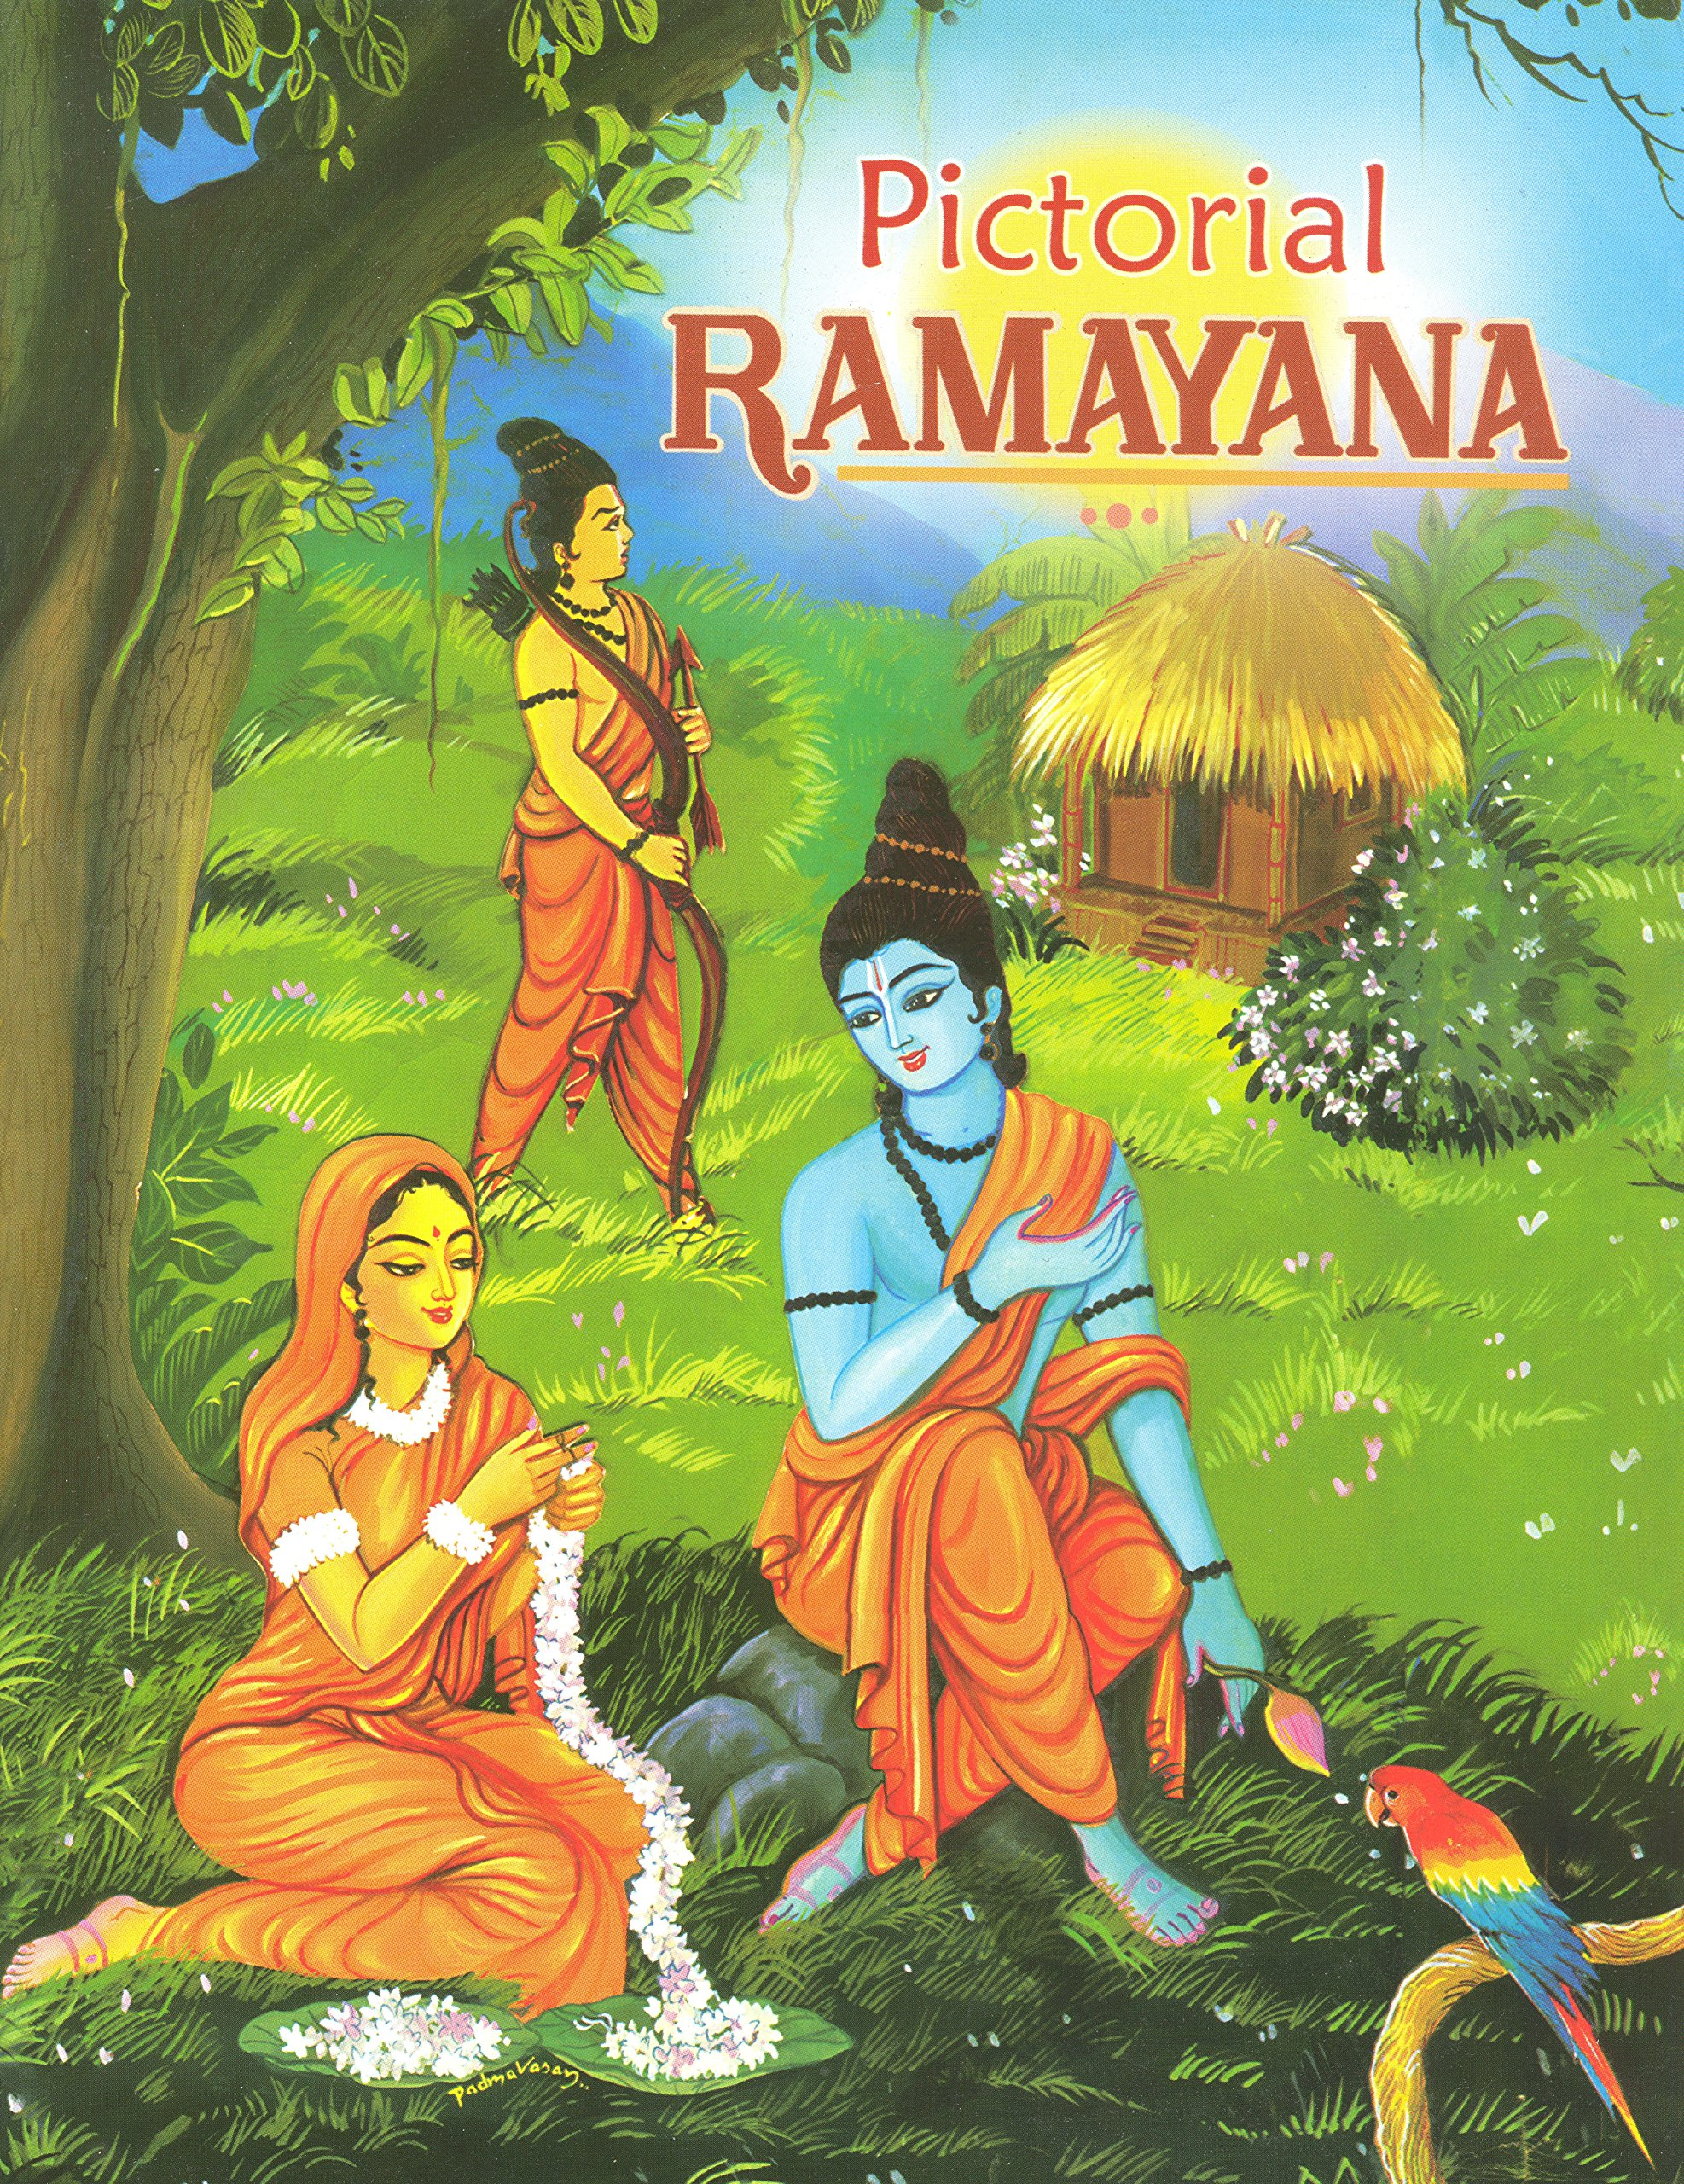 Pictorial Ramayana - For Children: Swami Raghaveshananda